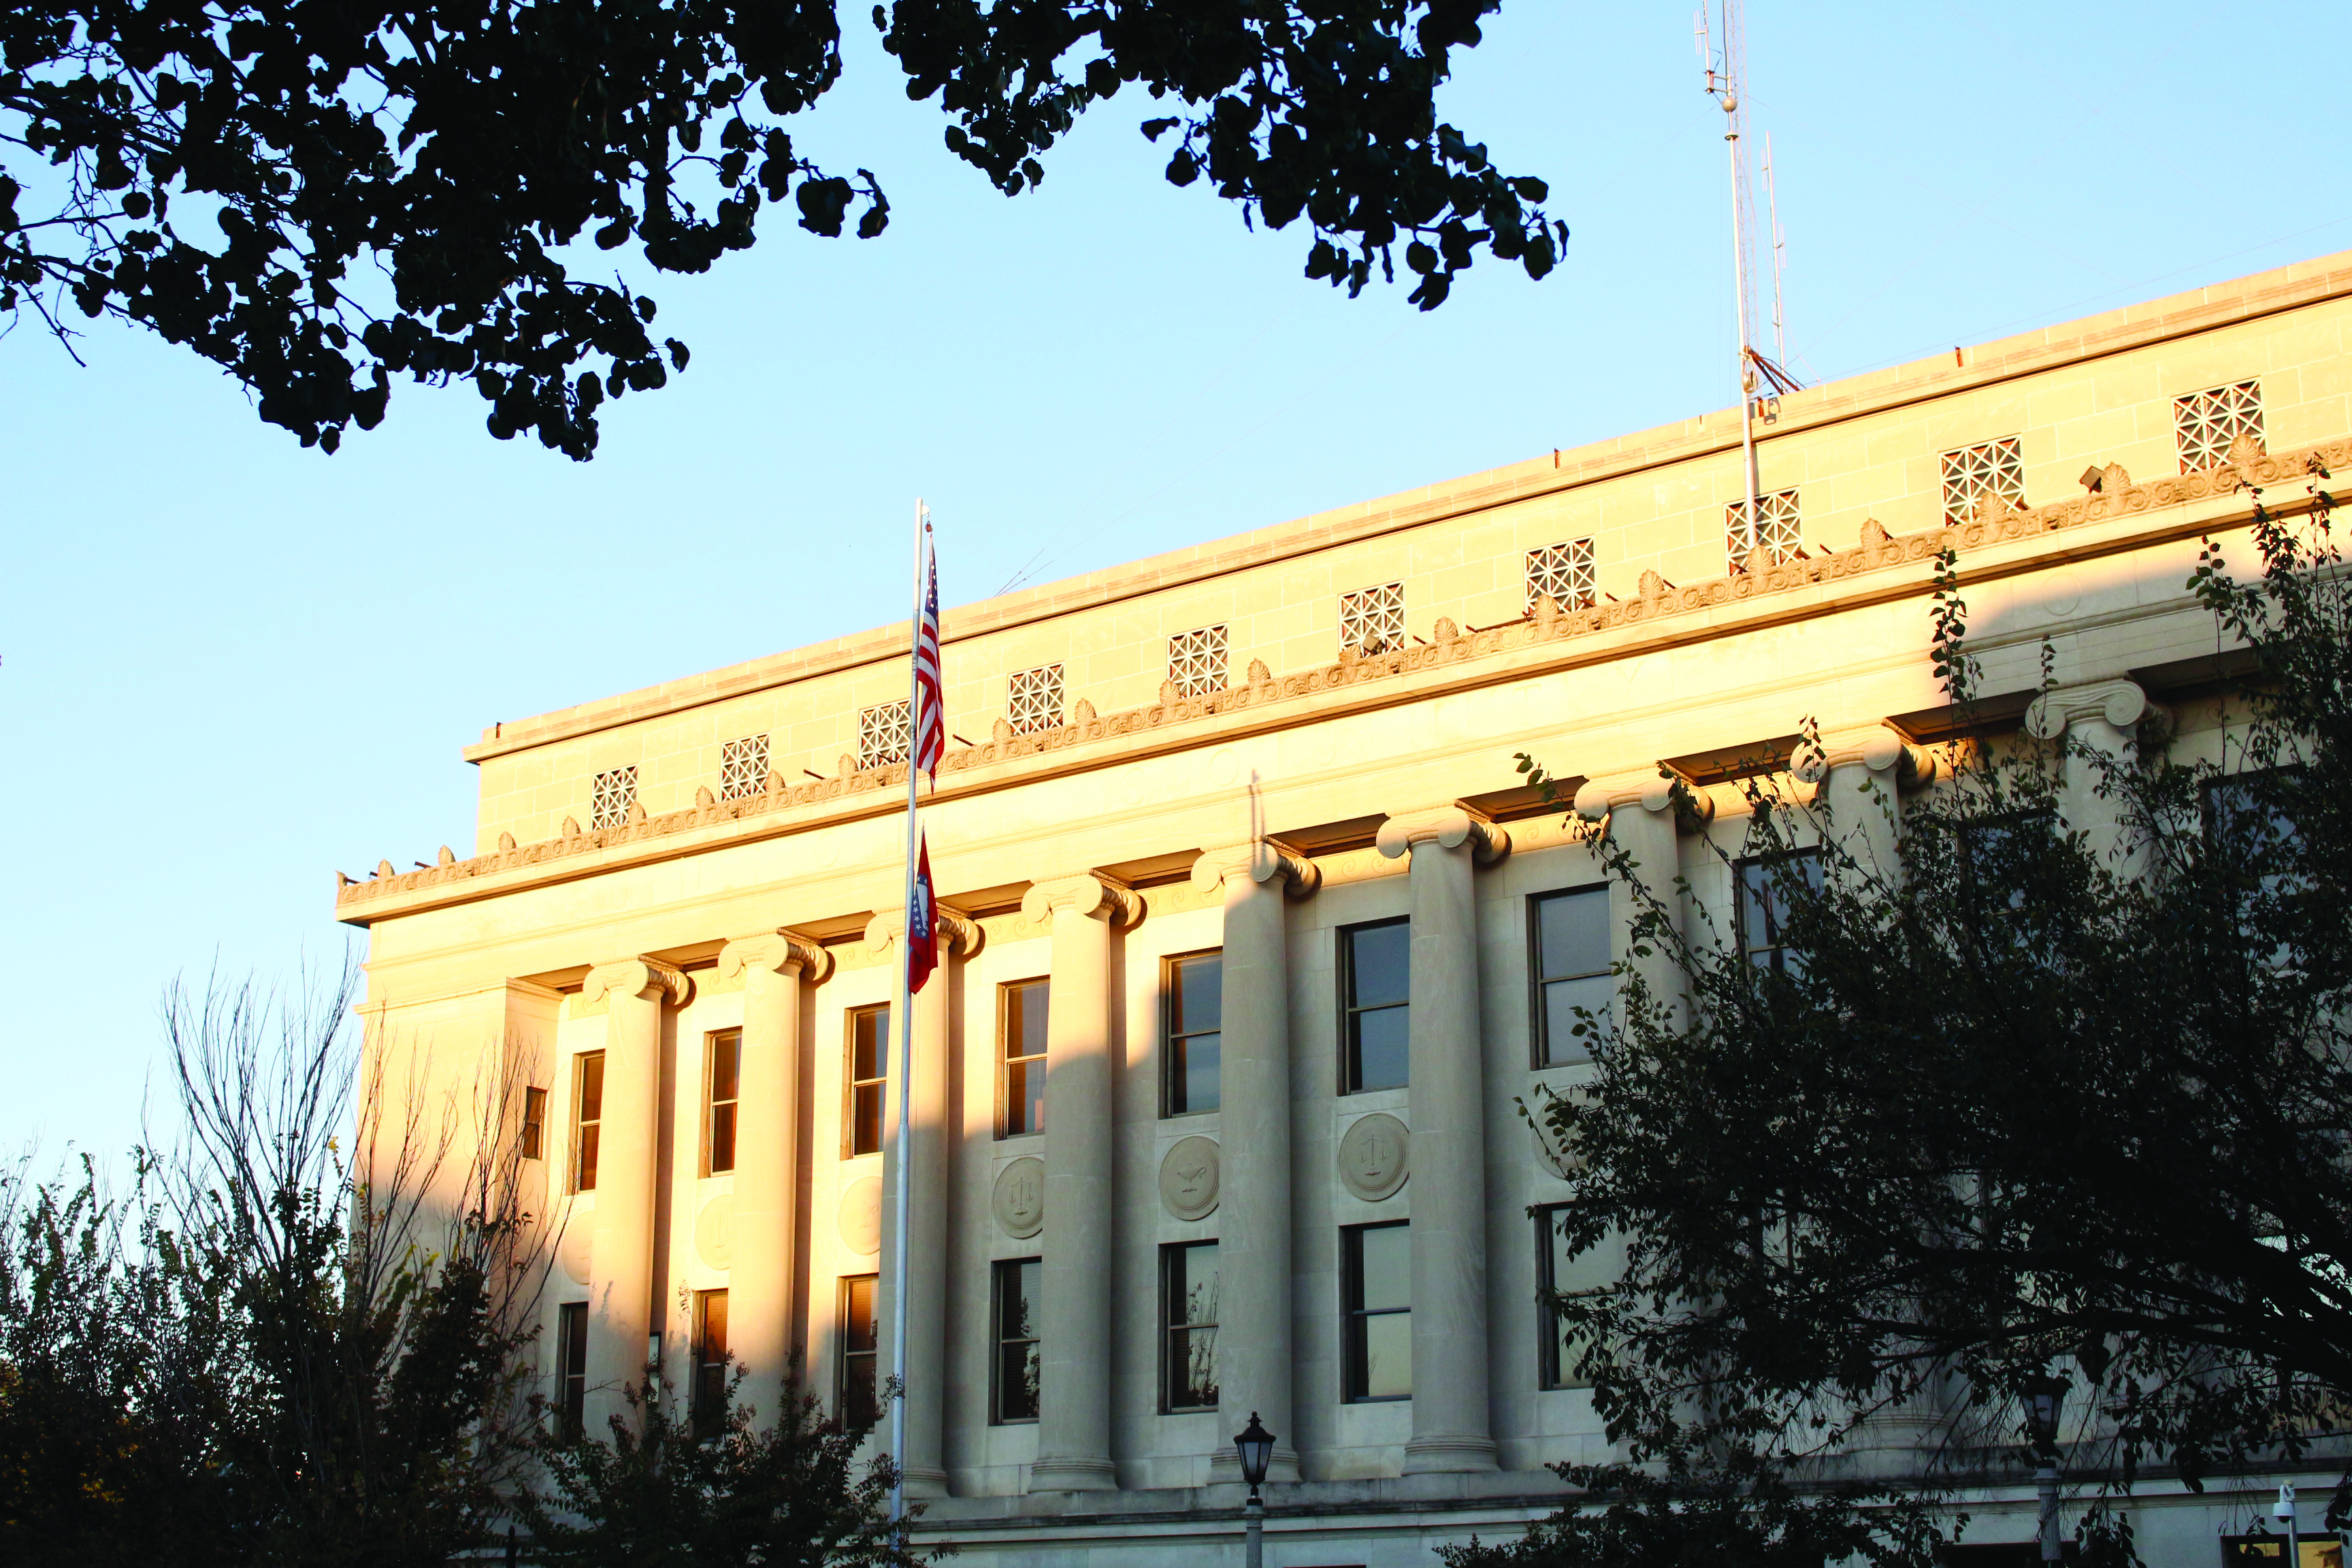 Courthouse To Remain Closed But County Business Can Still Be Conducted